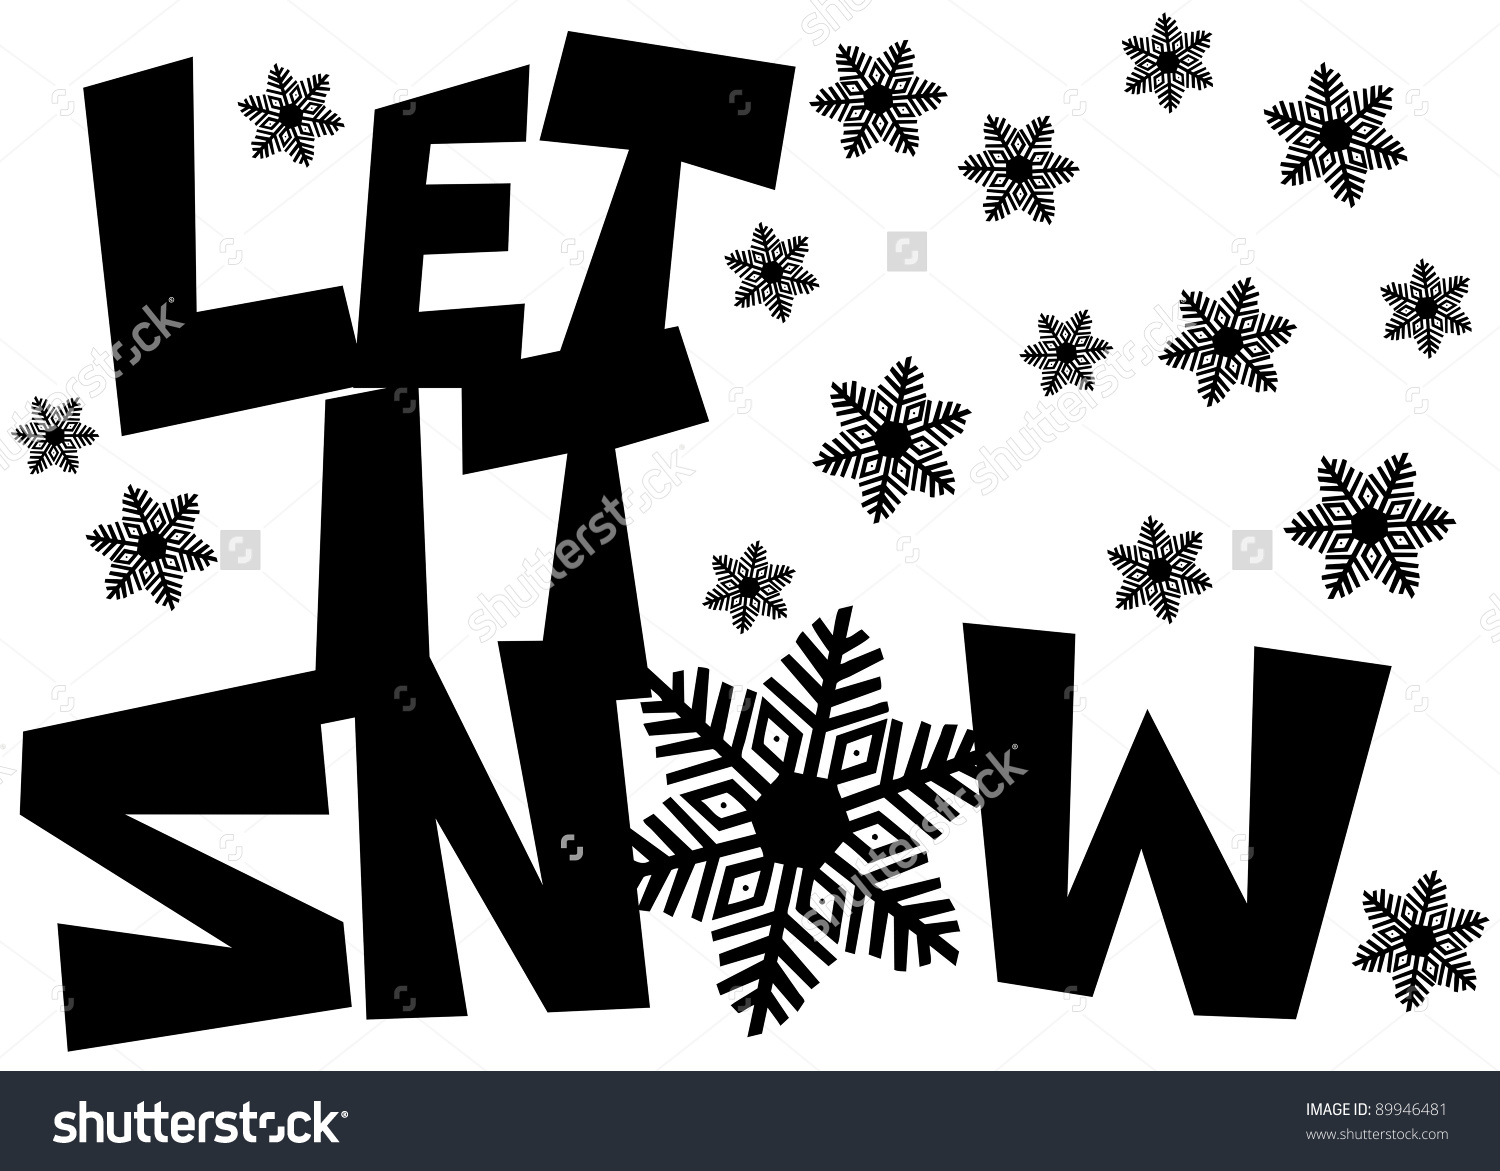 Detail snowflakes text clipart black and white banner stock stock-photo-let-it-snow-freehand-drawn-text-with-snowflake-clipart ... banner stock